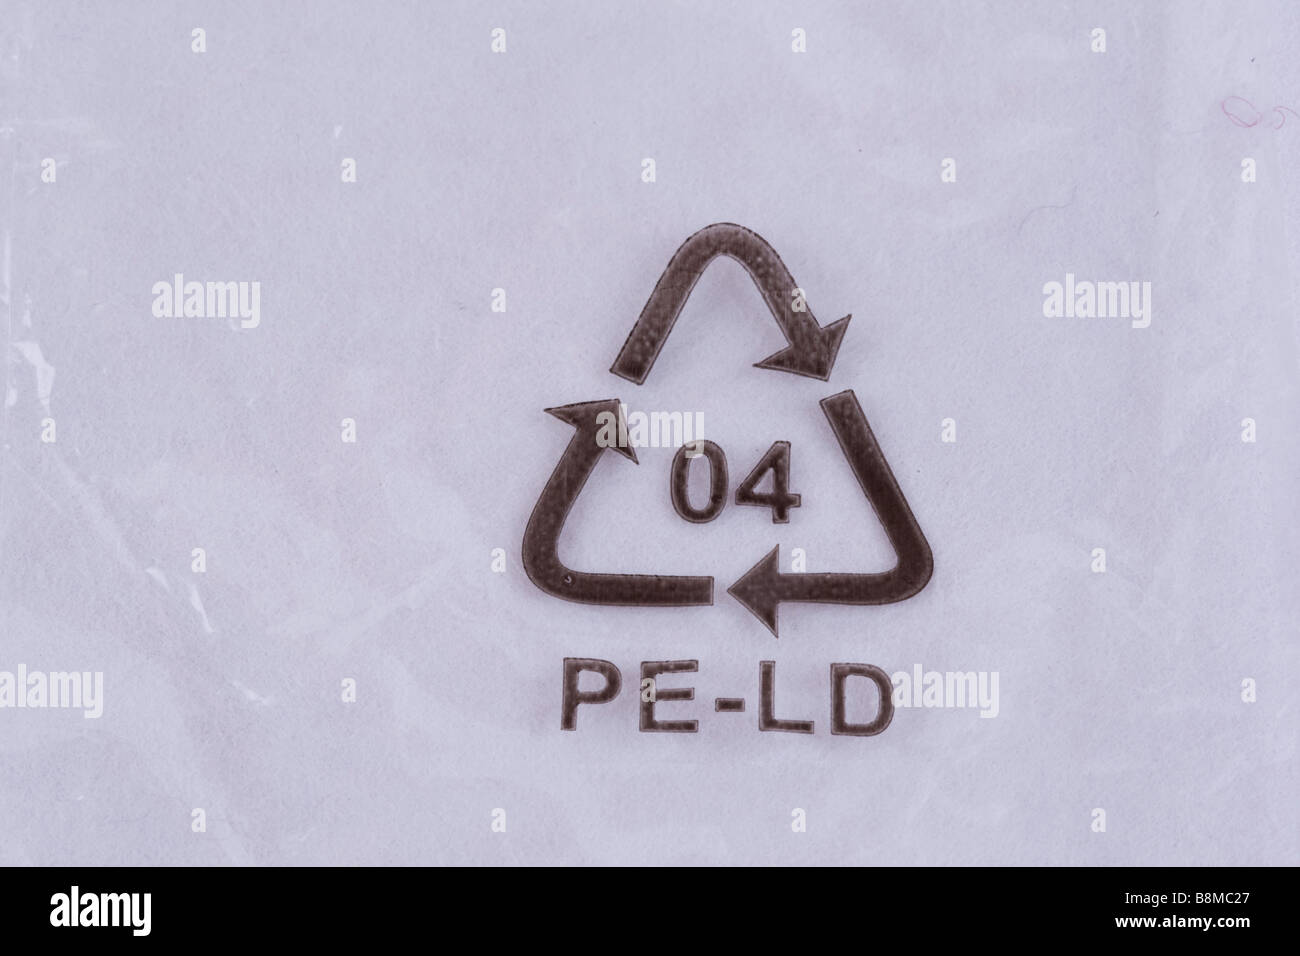 Recycling logo stock photos recycling logo stock images alamy ldpe pe ld number 4 low density polyethylene recycling logo on plastic packaging uk stock biocorpaavc